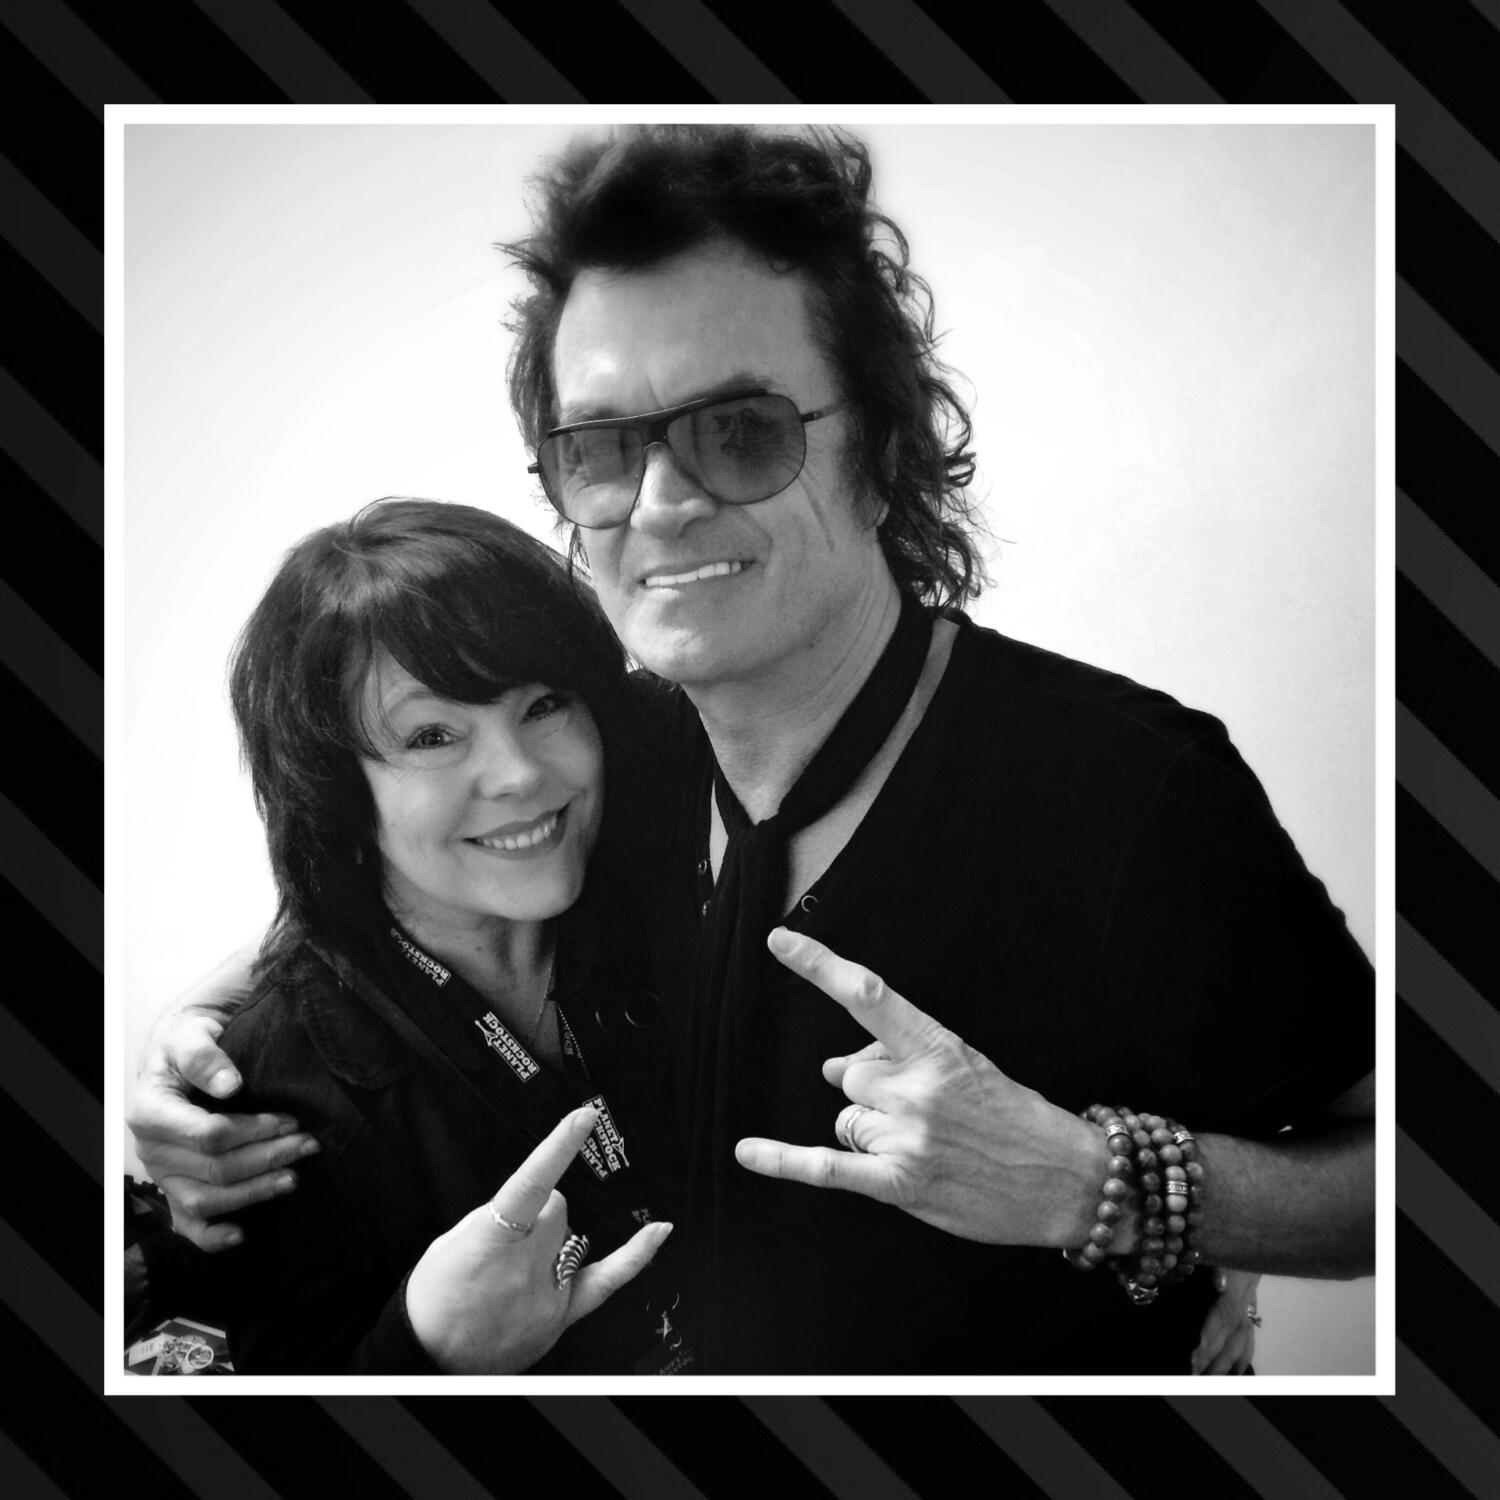 61: The one with Deep Purple's Glenn Hughes